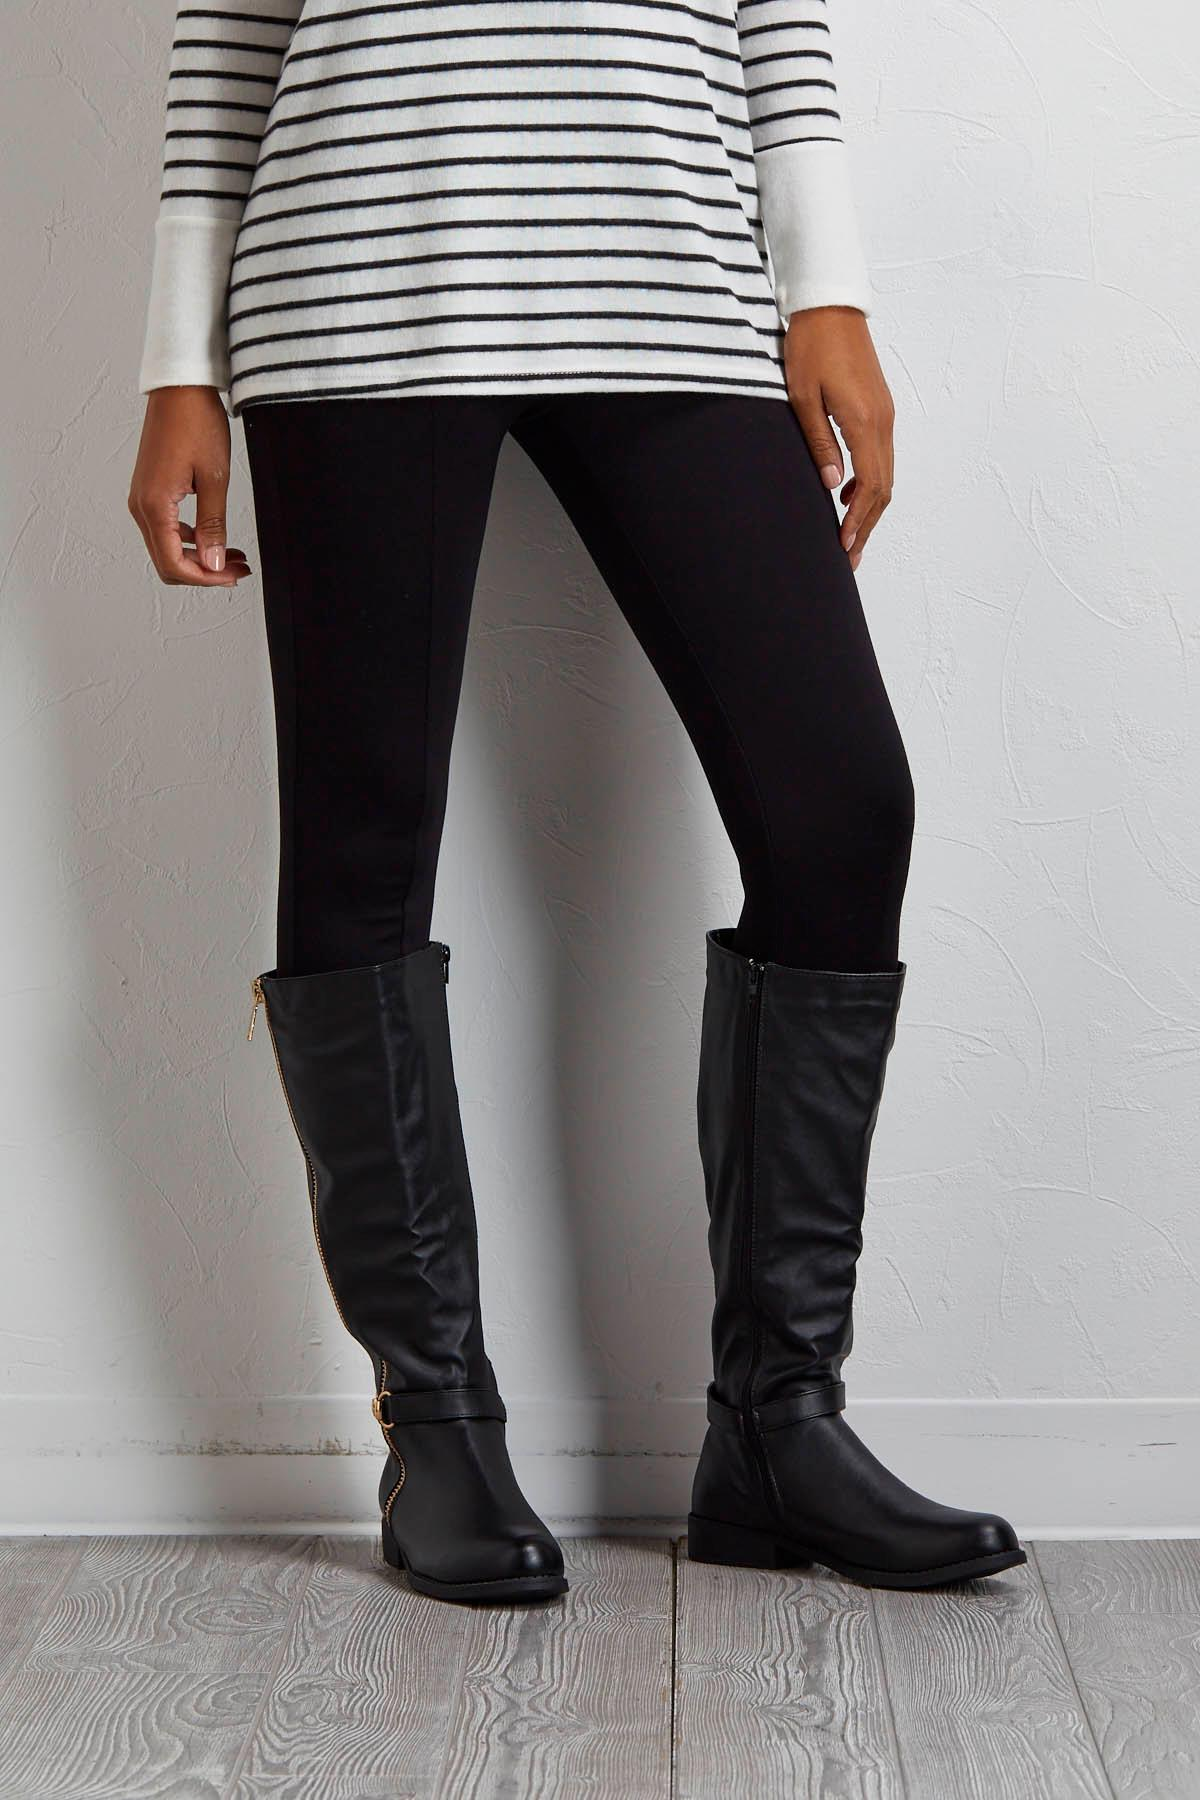 Find great deals on eBay for Stirrup Leggings in Leggings for Women. Shop with confidence.